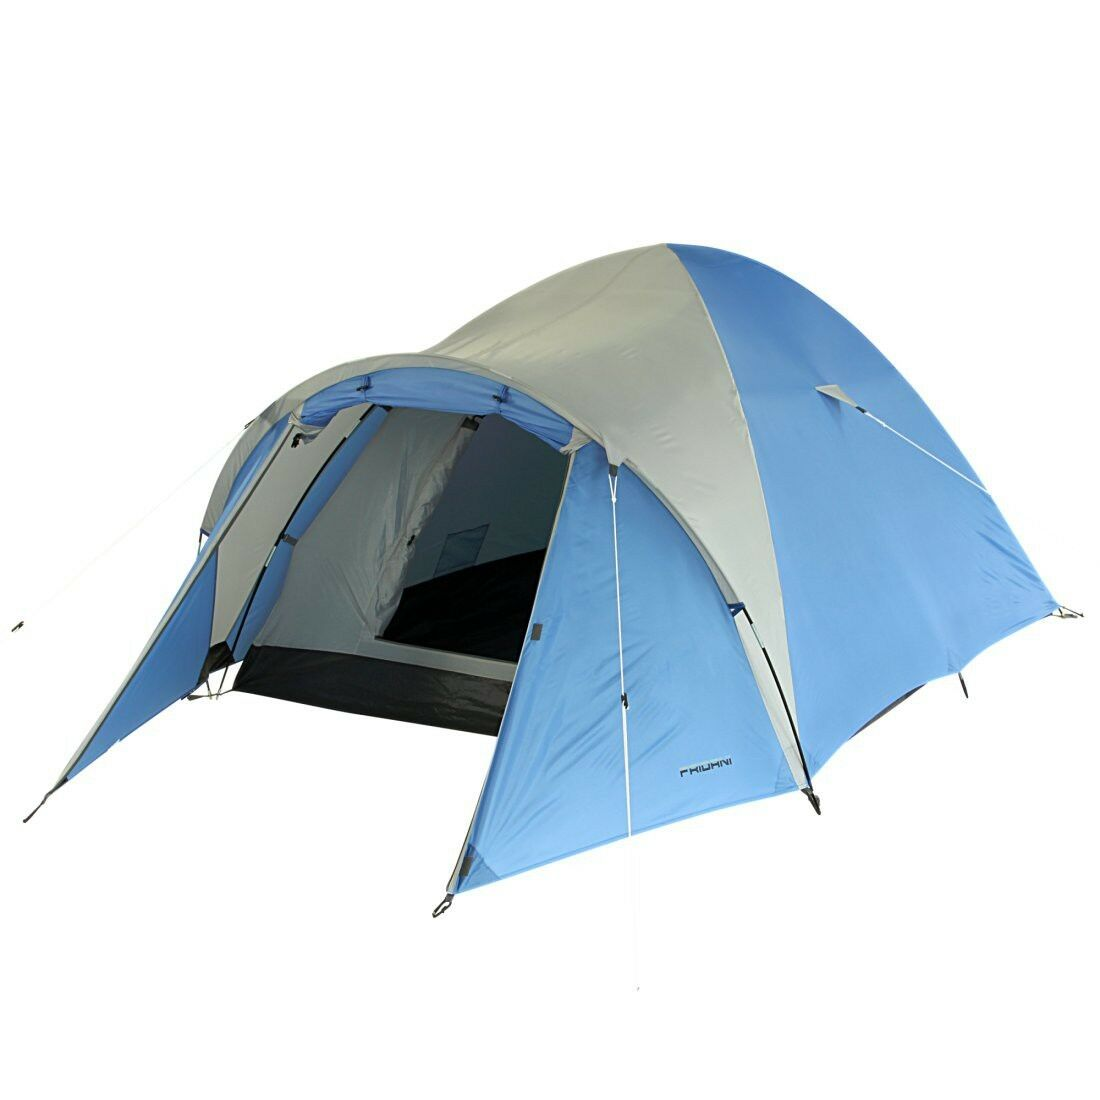 Fridani DSB 300 - tenda igloo per 3 persone con anticamera, 3000 mm, 310x180x120